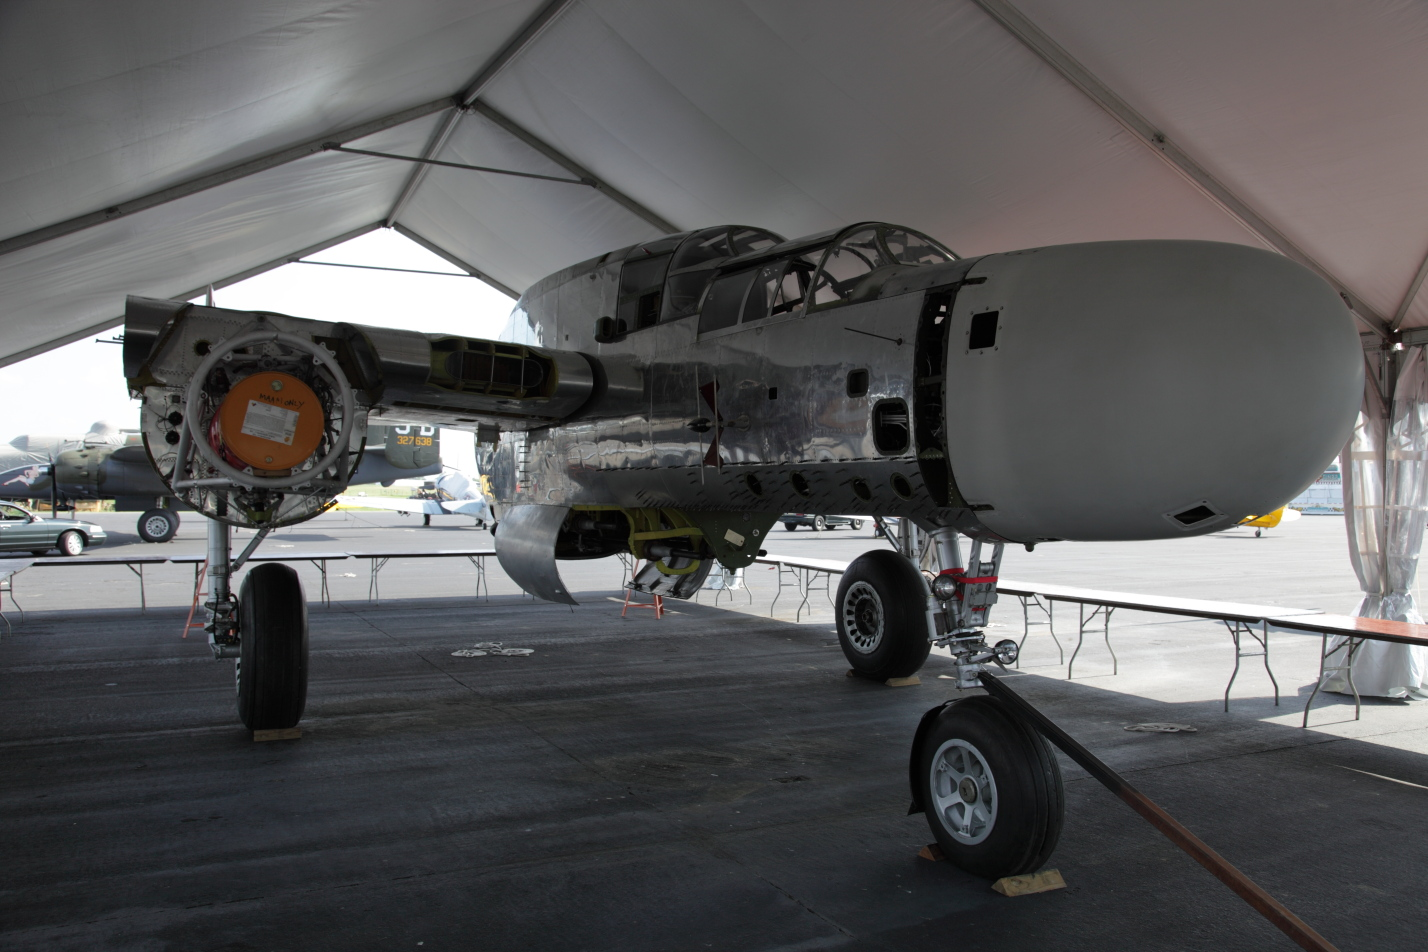 Mid-Atlantic Air Museum's P-61 Black Widow Project